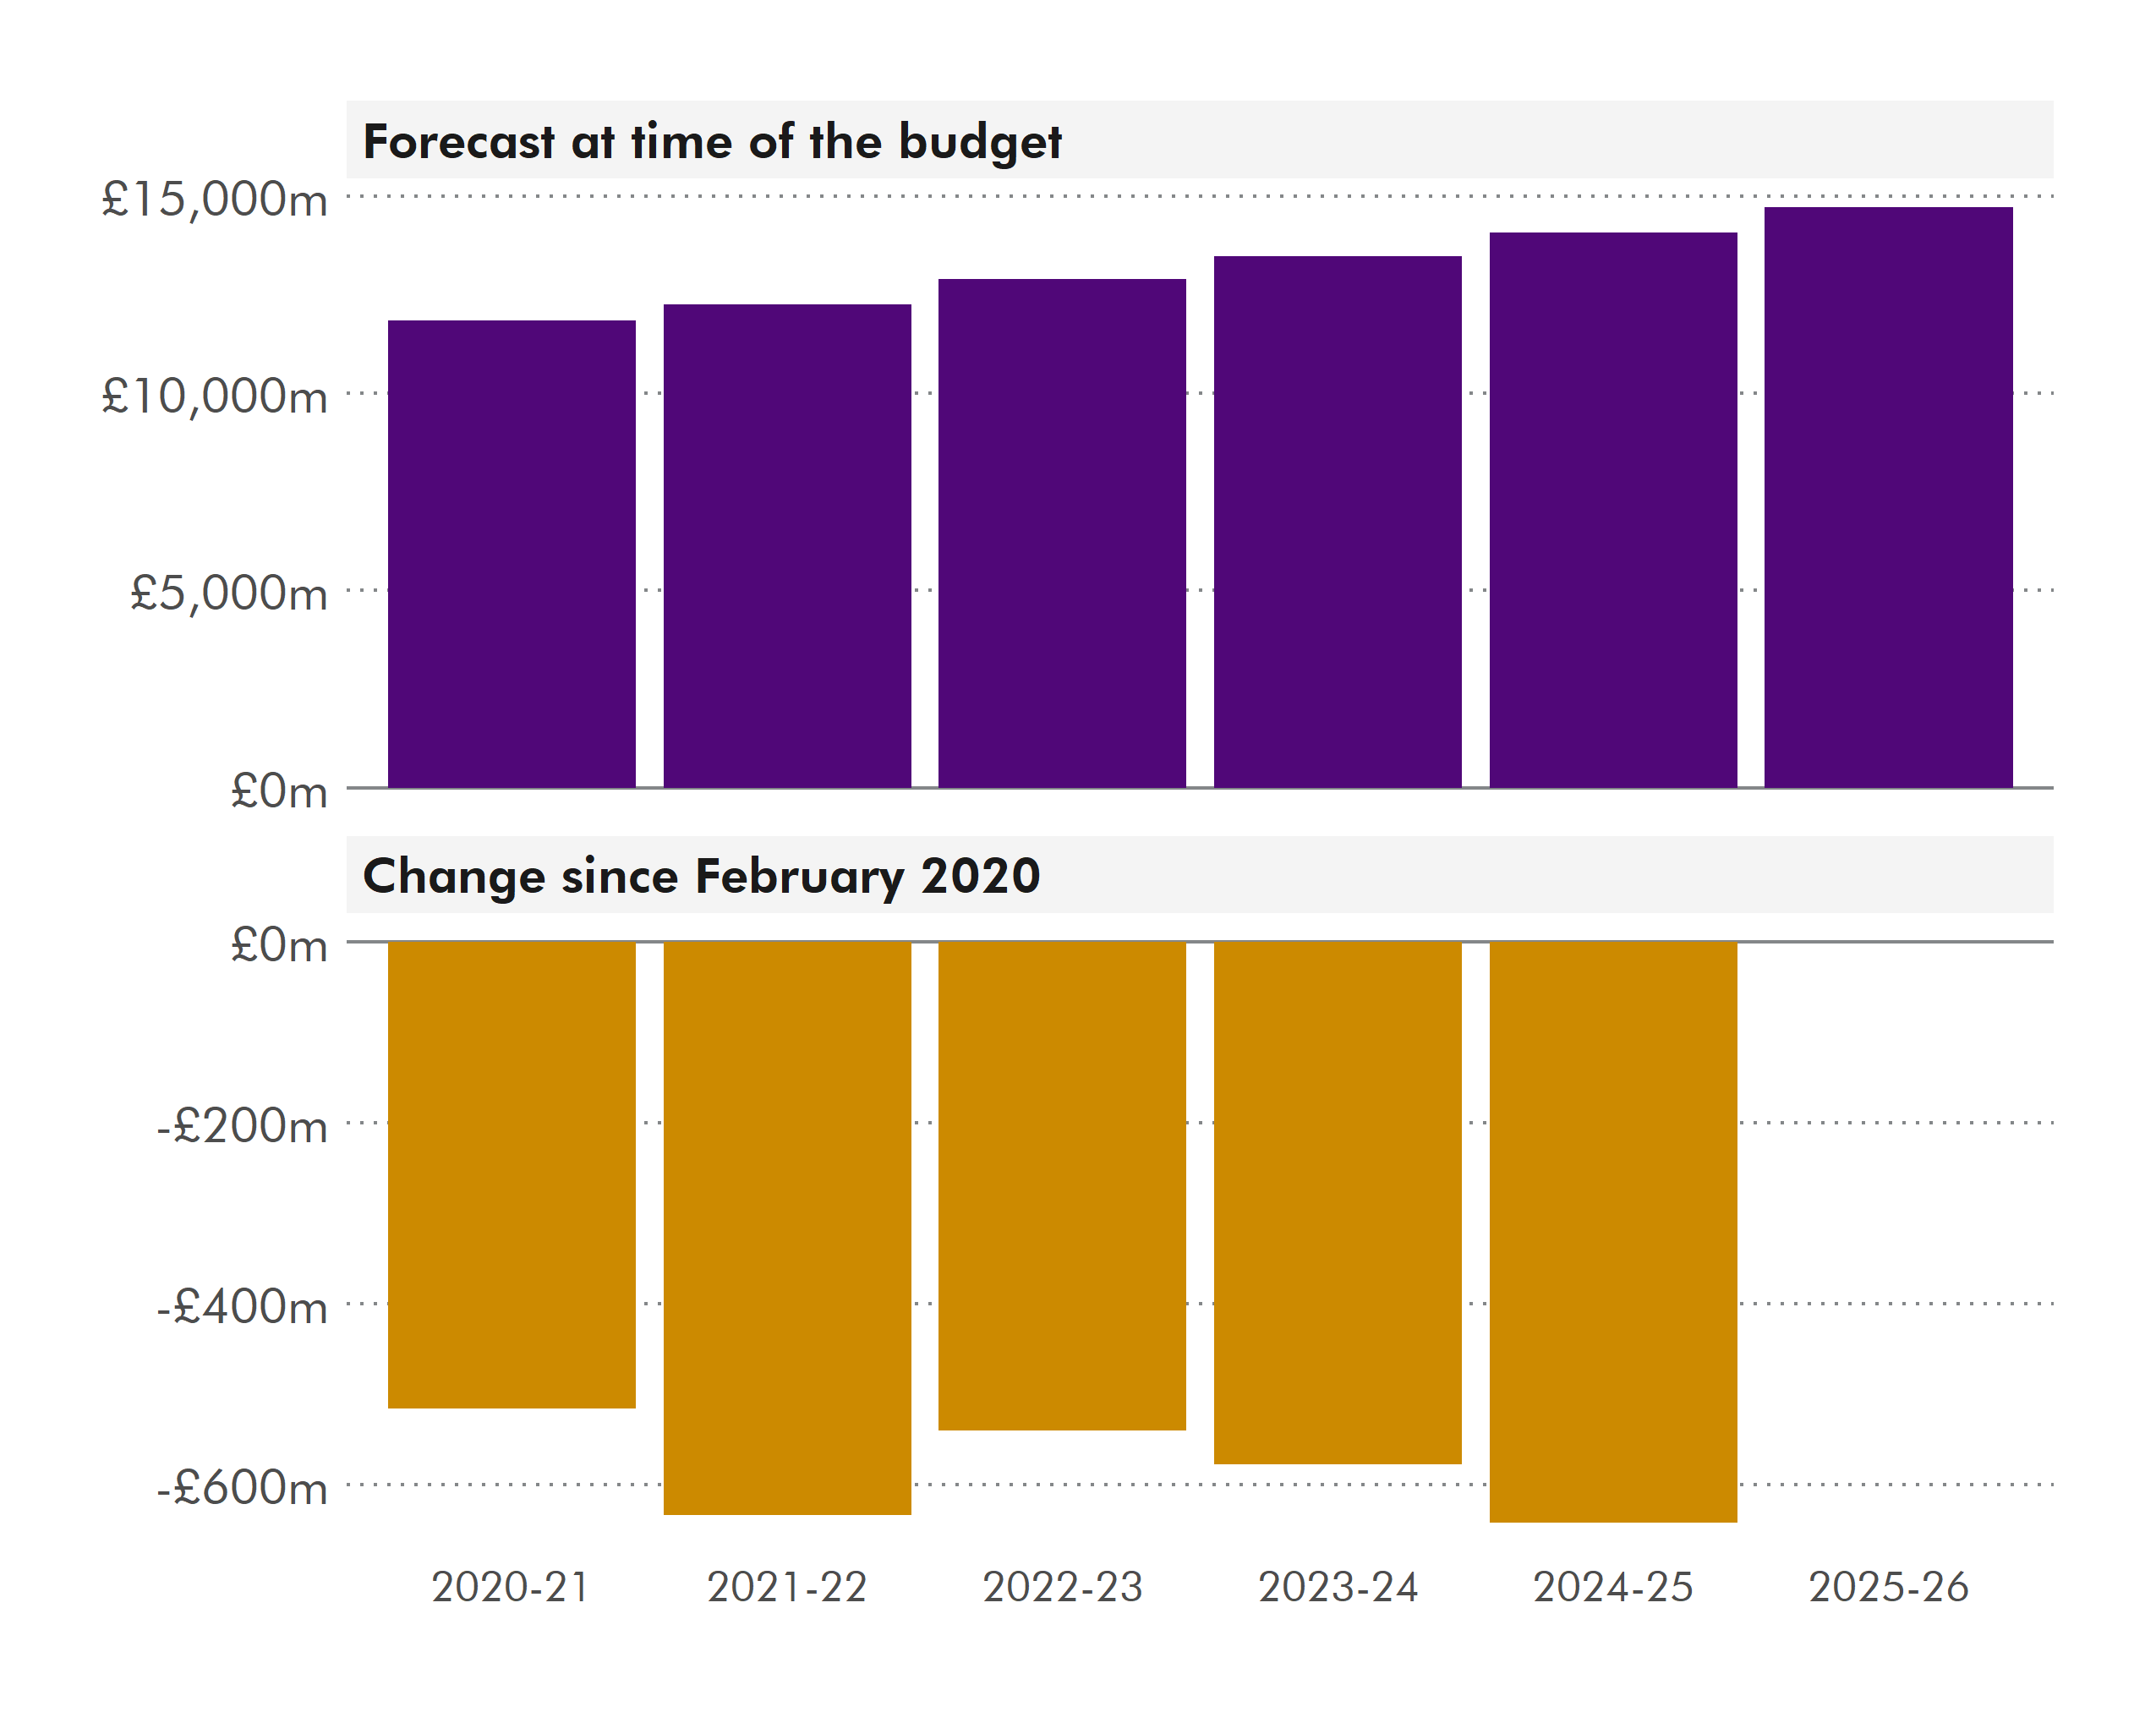 Figure 3 shows that income tax was forecast at Budget 2020-21 to rise from just over £10 million in 2020-21 to just under £15 million in 2025-26. It then shows at Budget 2021-22 the forecast is just over £500 million less in 2020-21 to just over £600 million less in 2024-25.